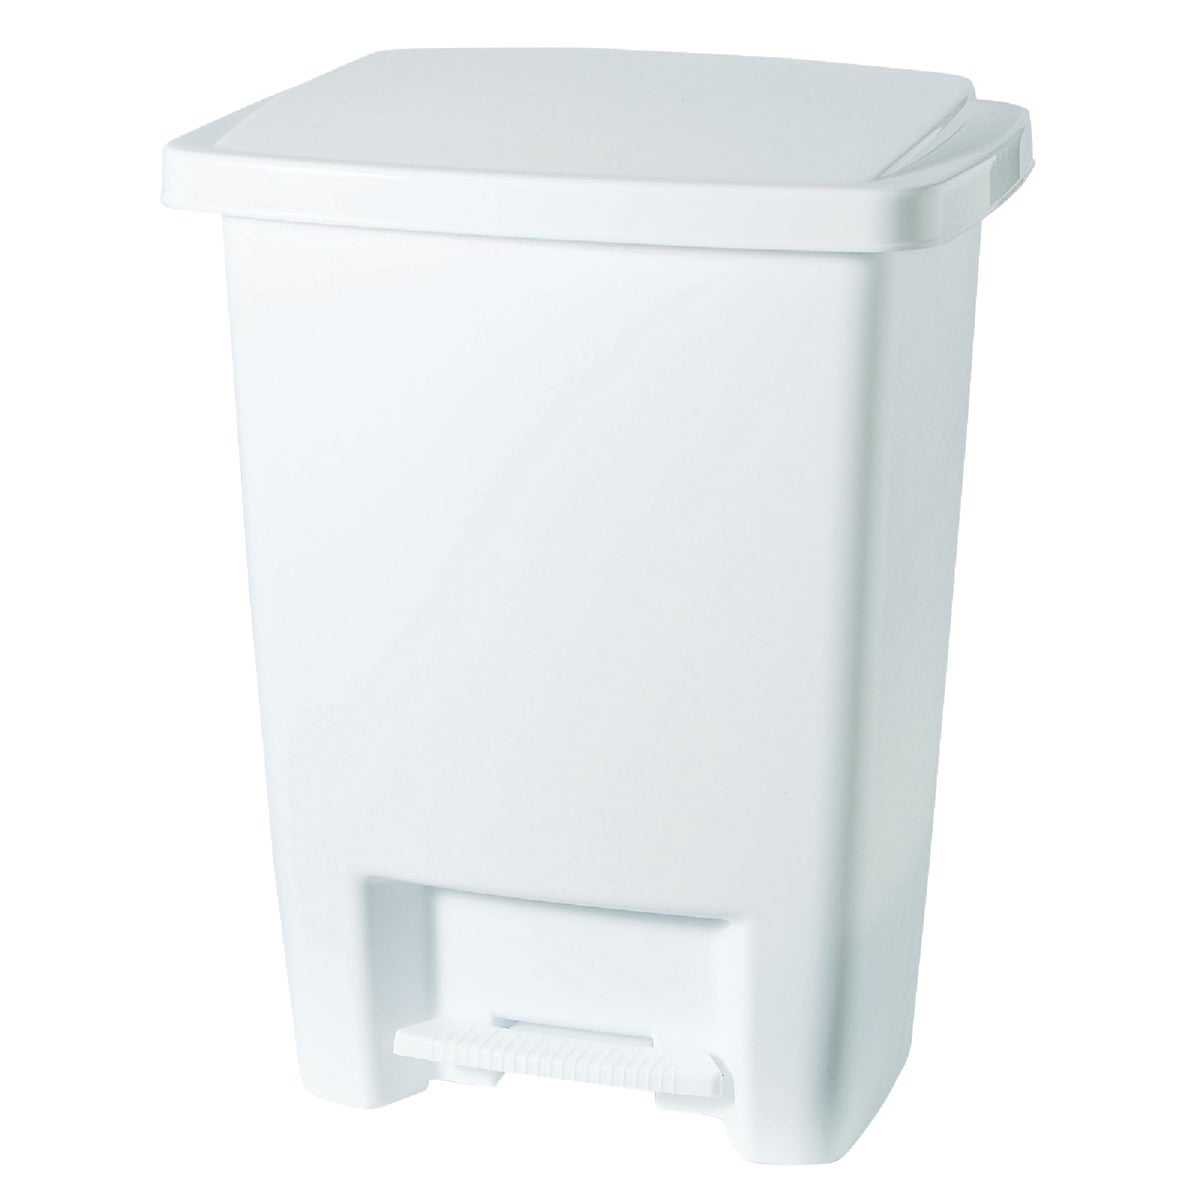 33QT WHITE WASTEBASKET - 284187-WHT by Rubbermaid Home